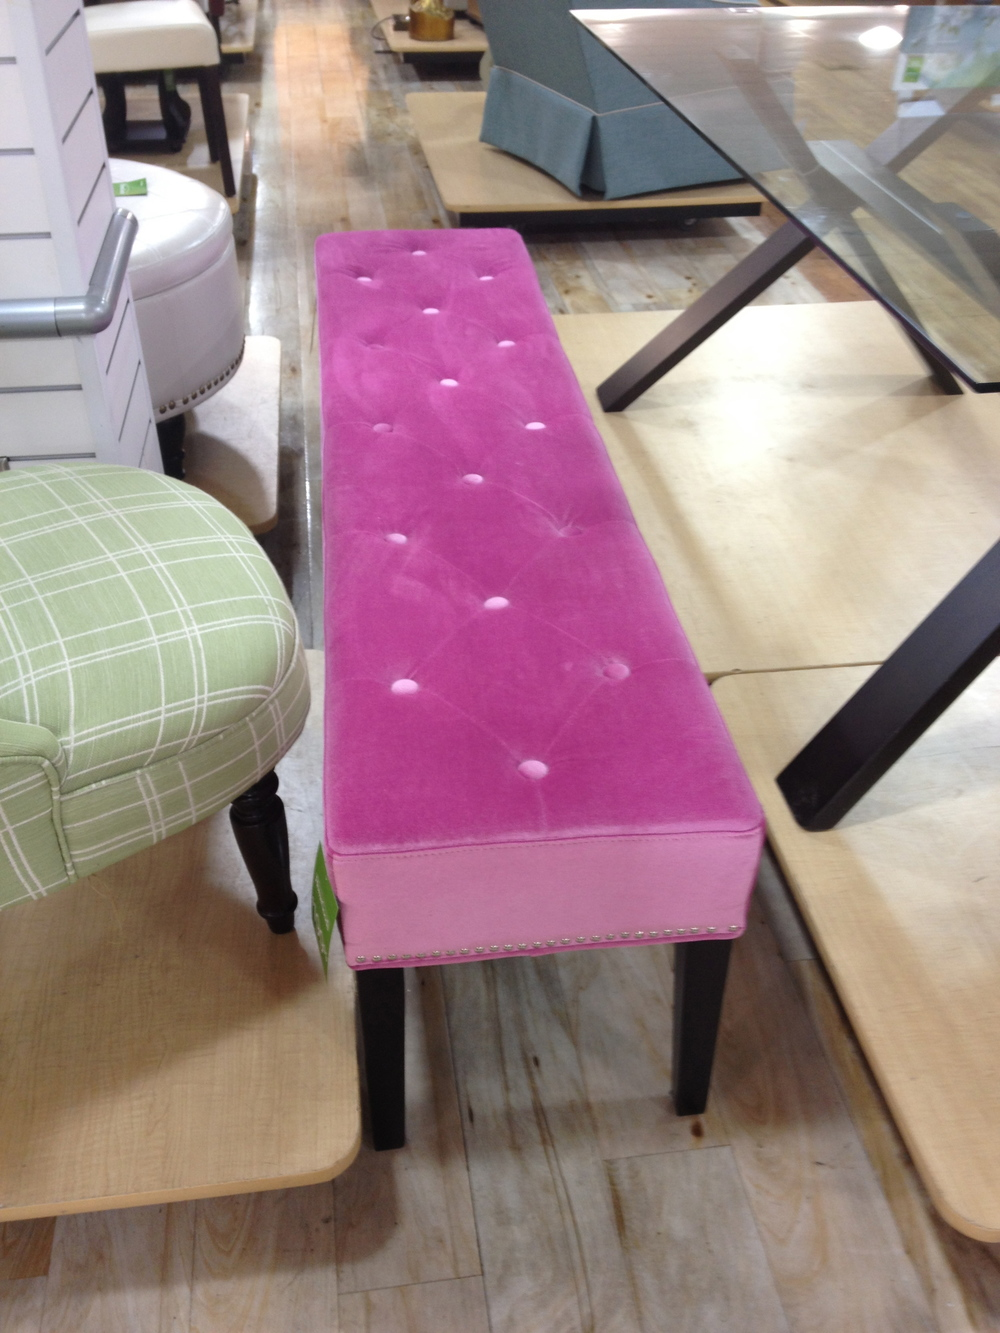 The length of this bench caught my eye.  It's a hard color for many spaces, although it could be awesome.   If fuchsia won't work with your decor this is a great piece to reupholster.  The length is perfect for a bench at the end of your bed.  Reupholstering a bench is fairly easy project to coordinate.